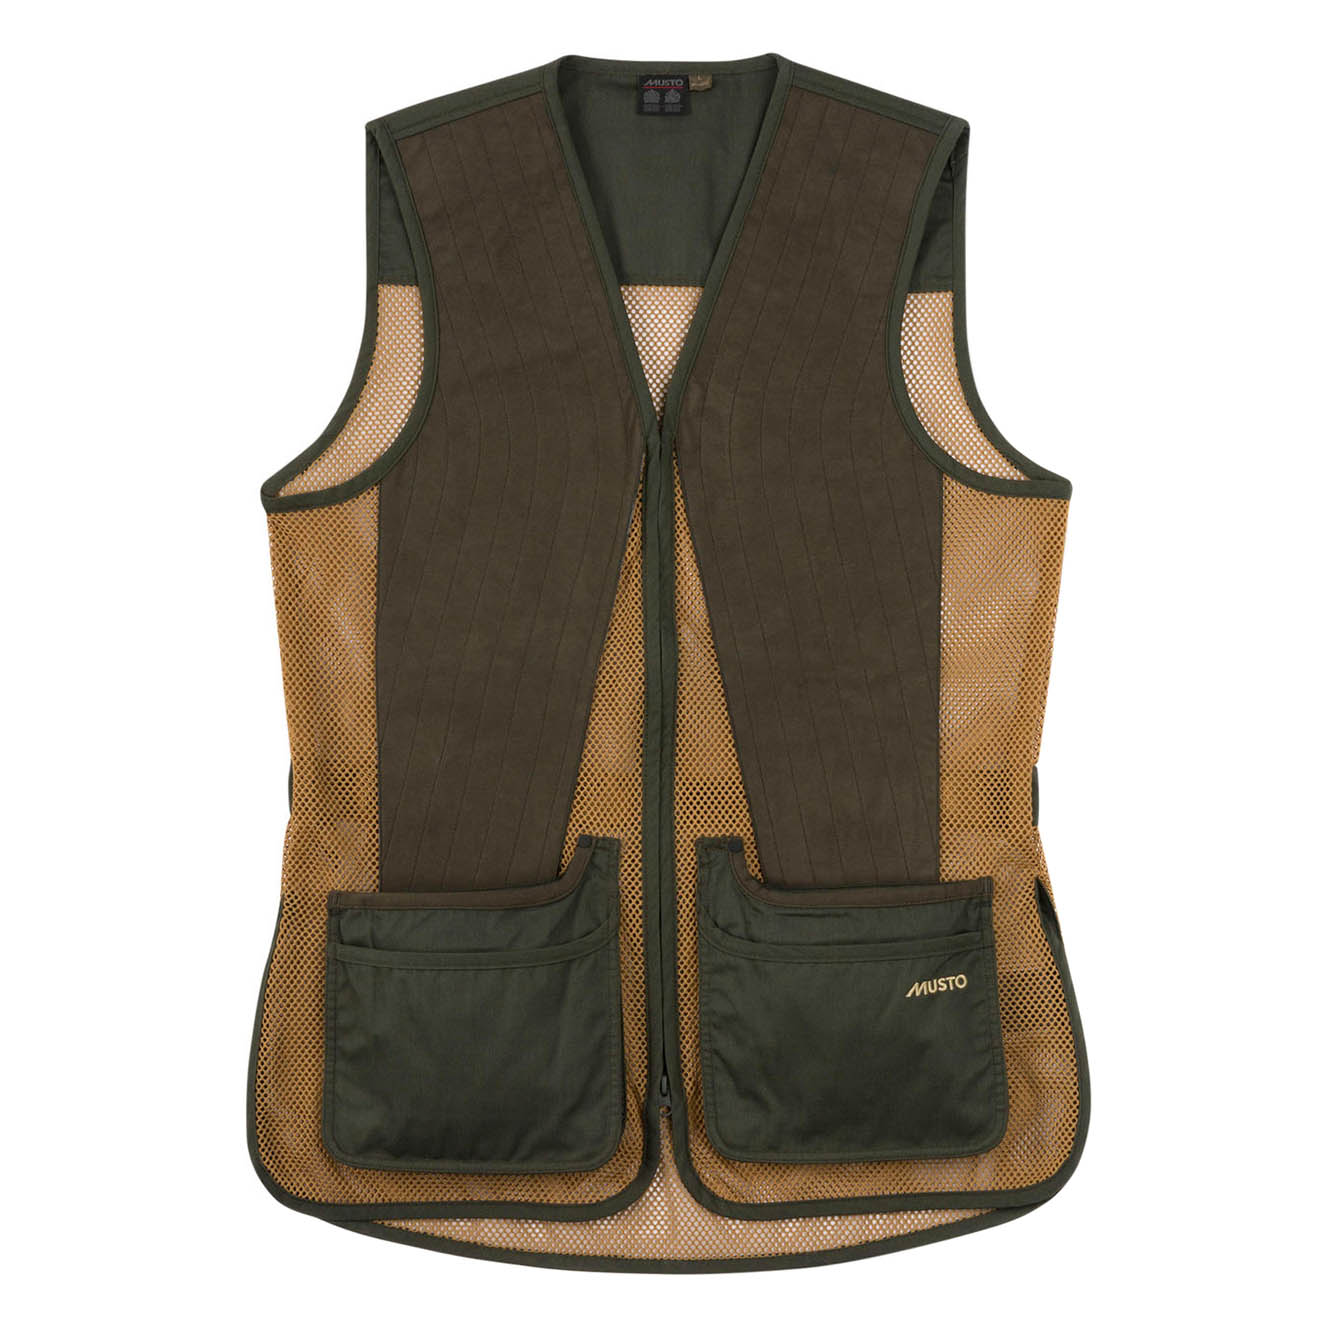 09dd17150bb68 Shooting & Country Clothing, Footwear & Accessories - The Sporting Lodge